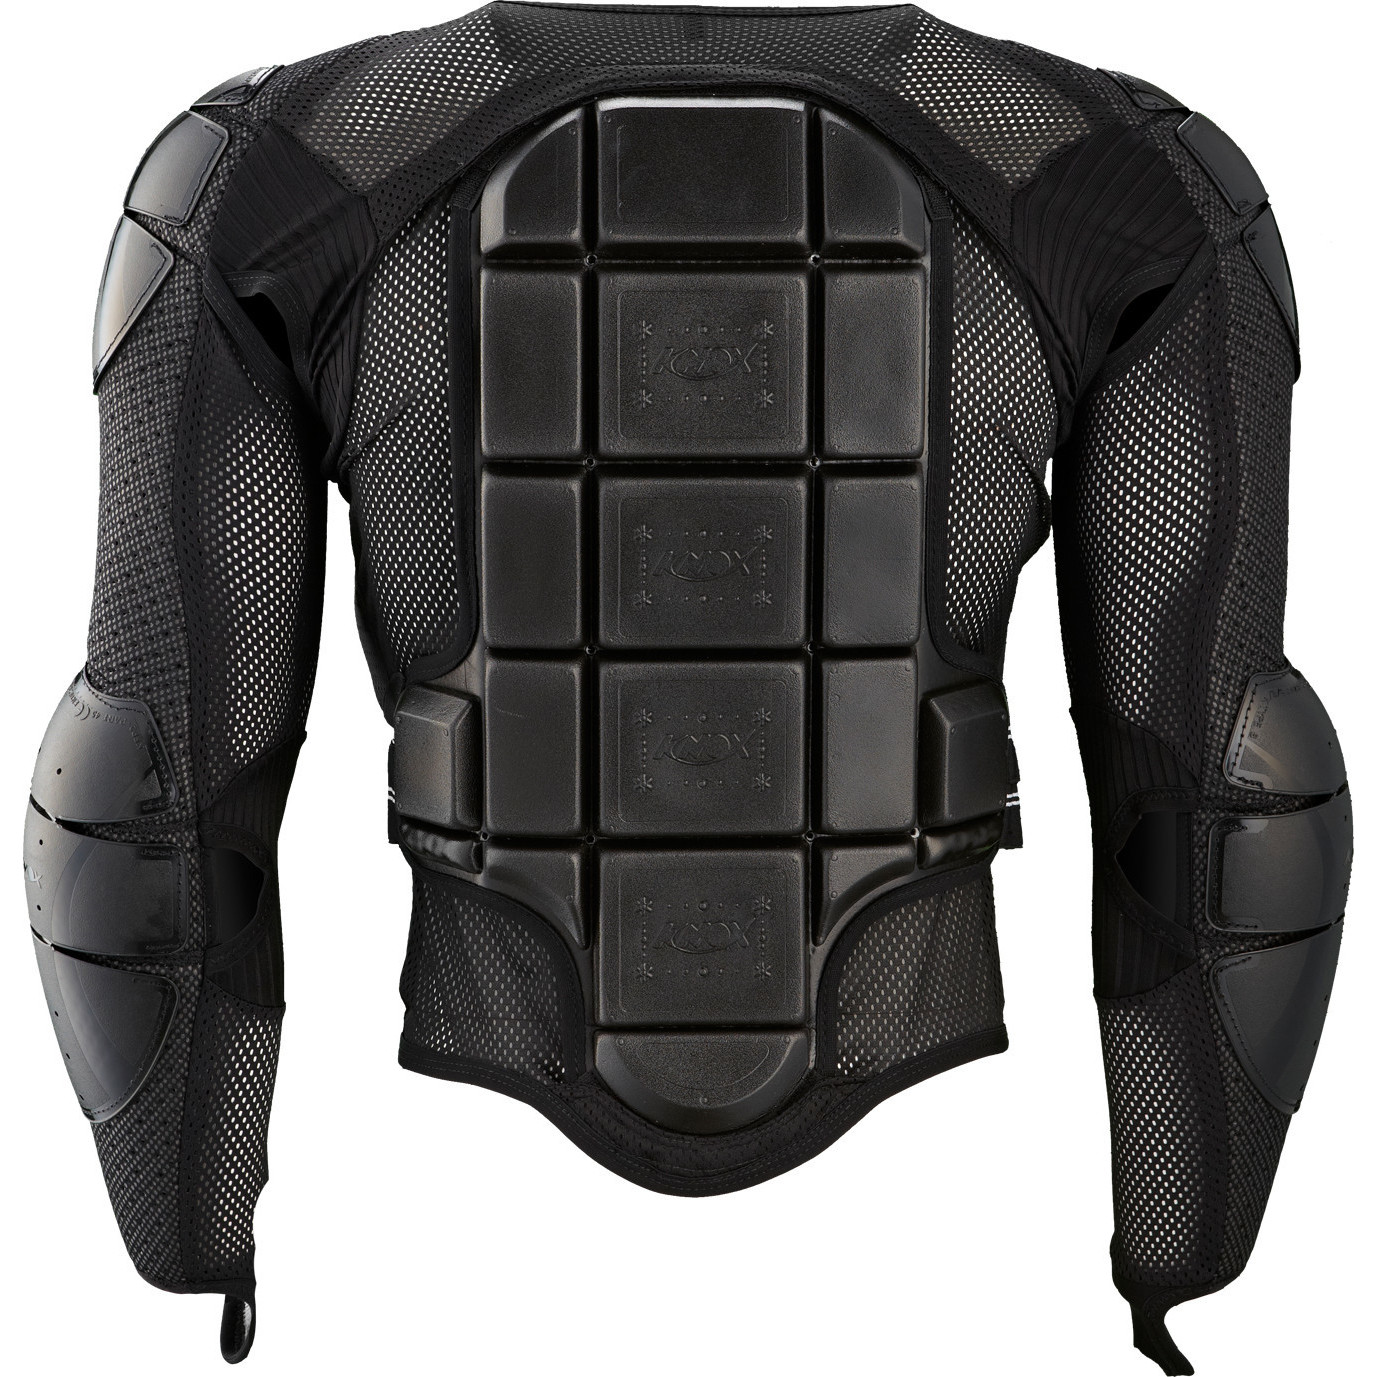 Knox cross shirt body protector lightweight all terrain for Motorcycle body armor shirt